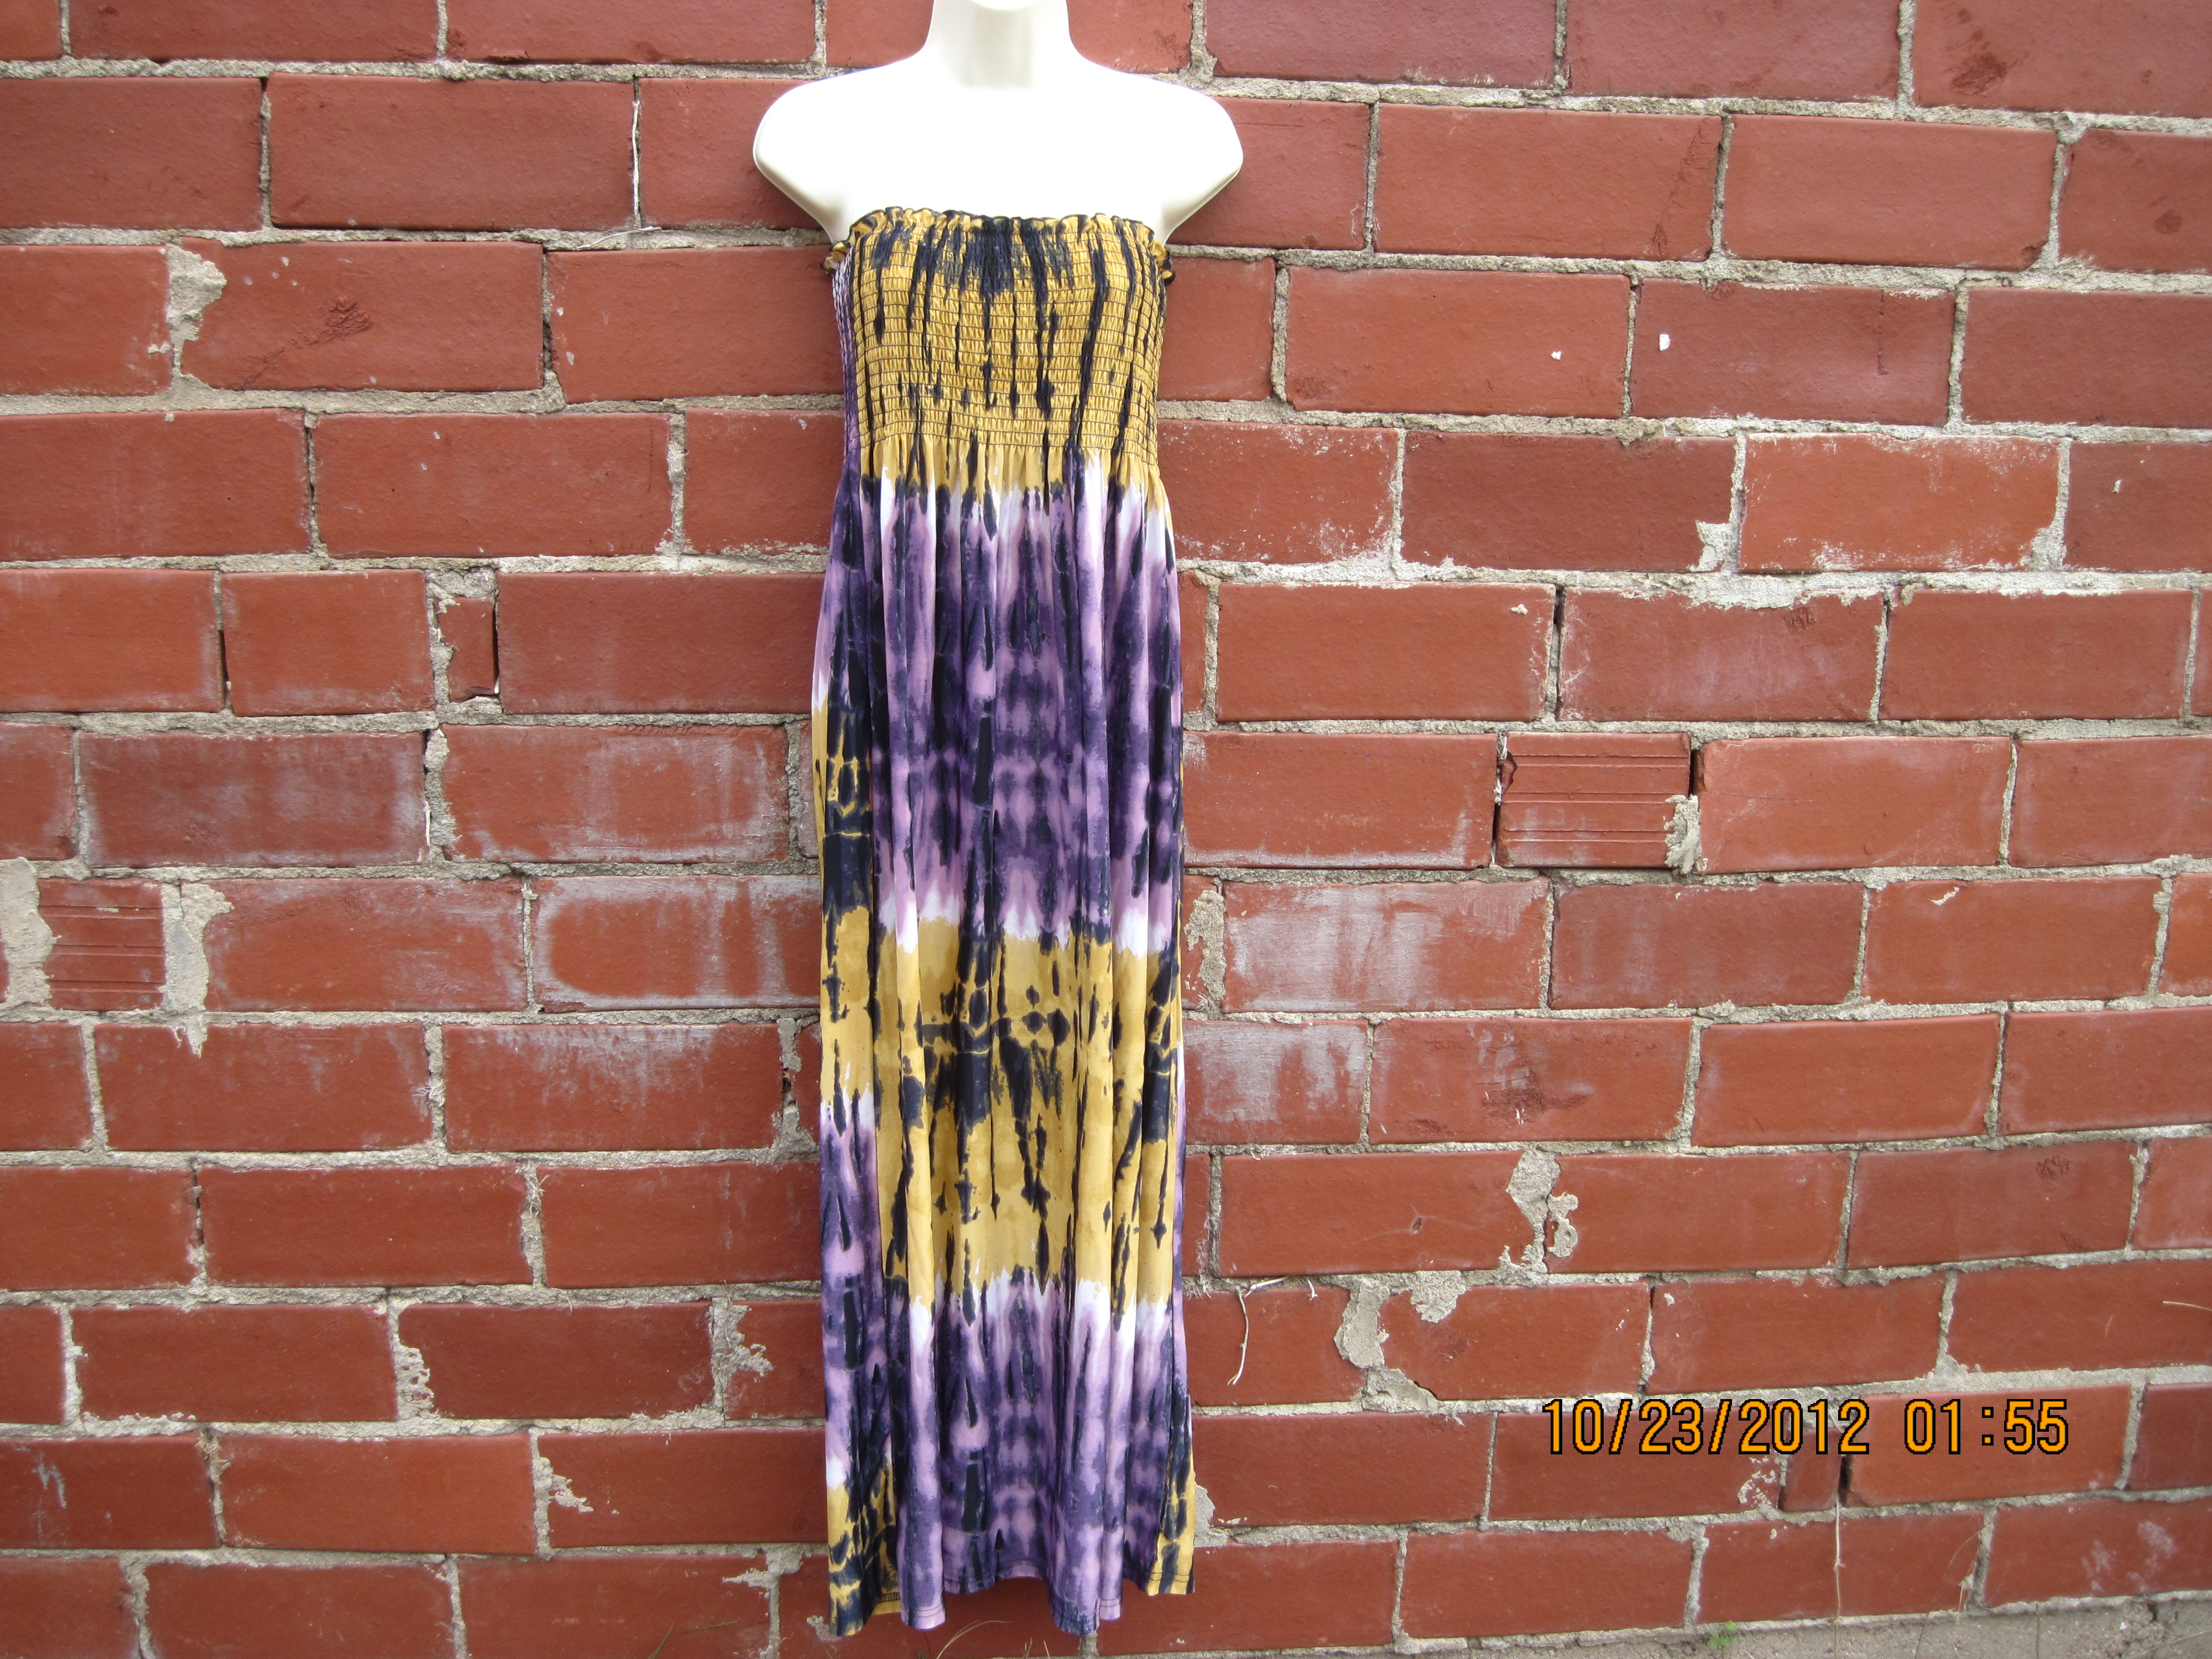 Chesley Sz L Tube Top Dress (purple burnt yellow)